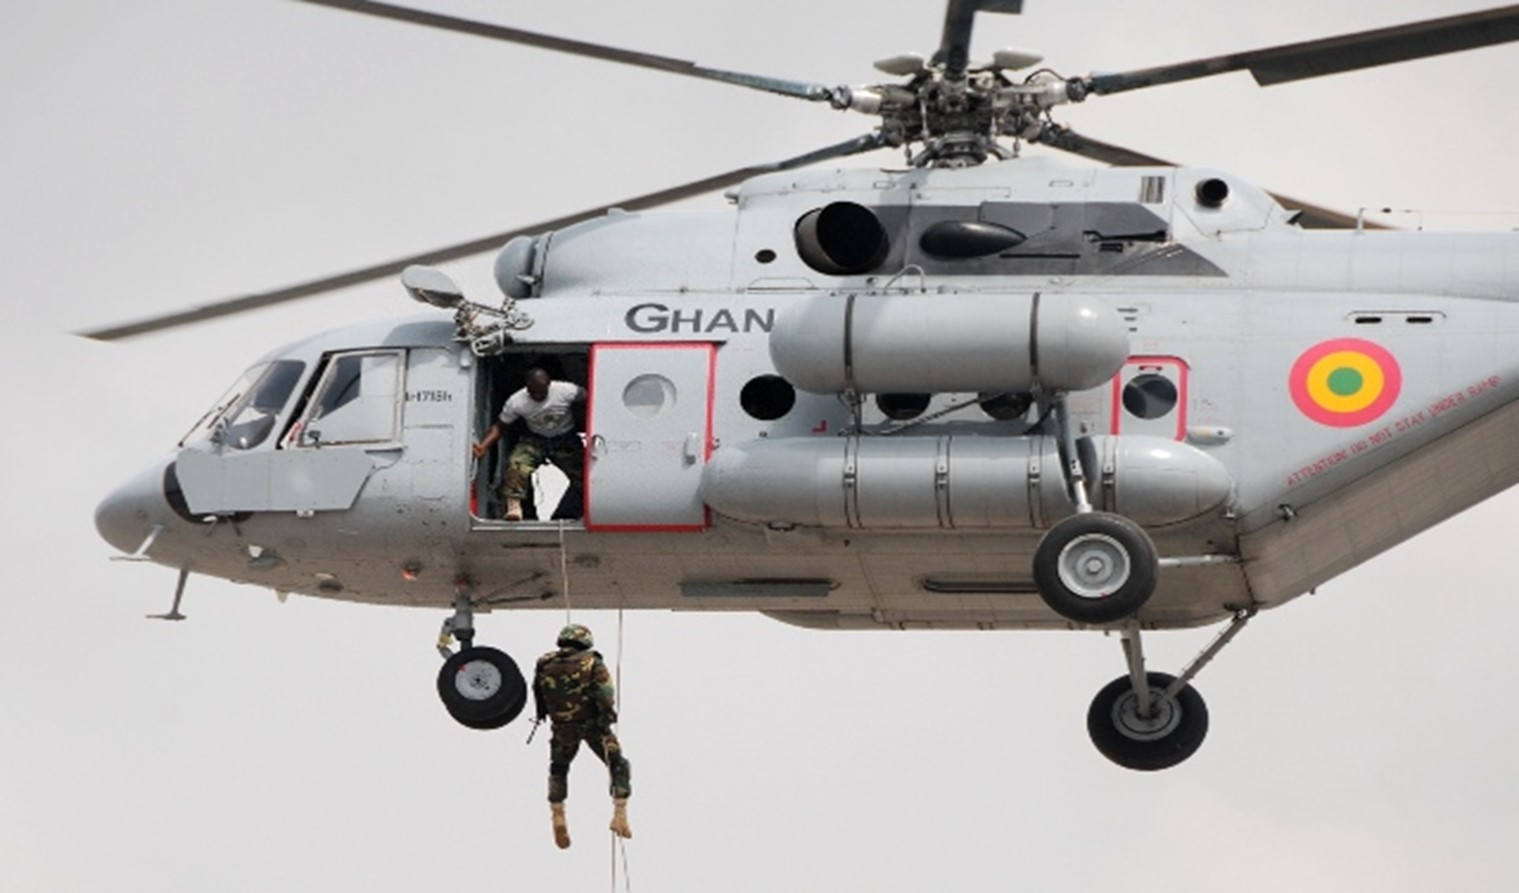 BANK OF GHANA TO USE HELICOPTERS TO CIRCULATE CASH OVER ATTACKS ON BULLION VANS- DR. ERNEST ADDISON - PAN AFRICAN VISIONS